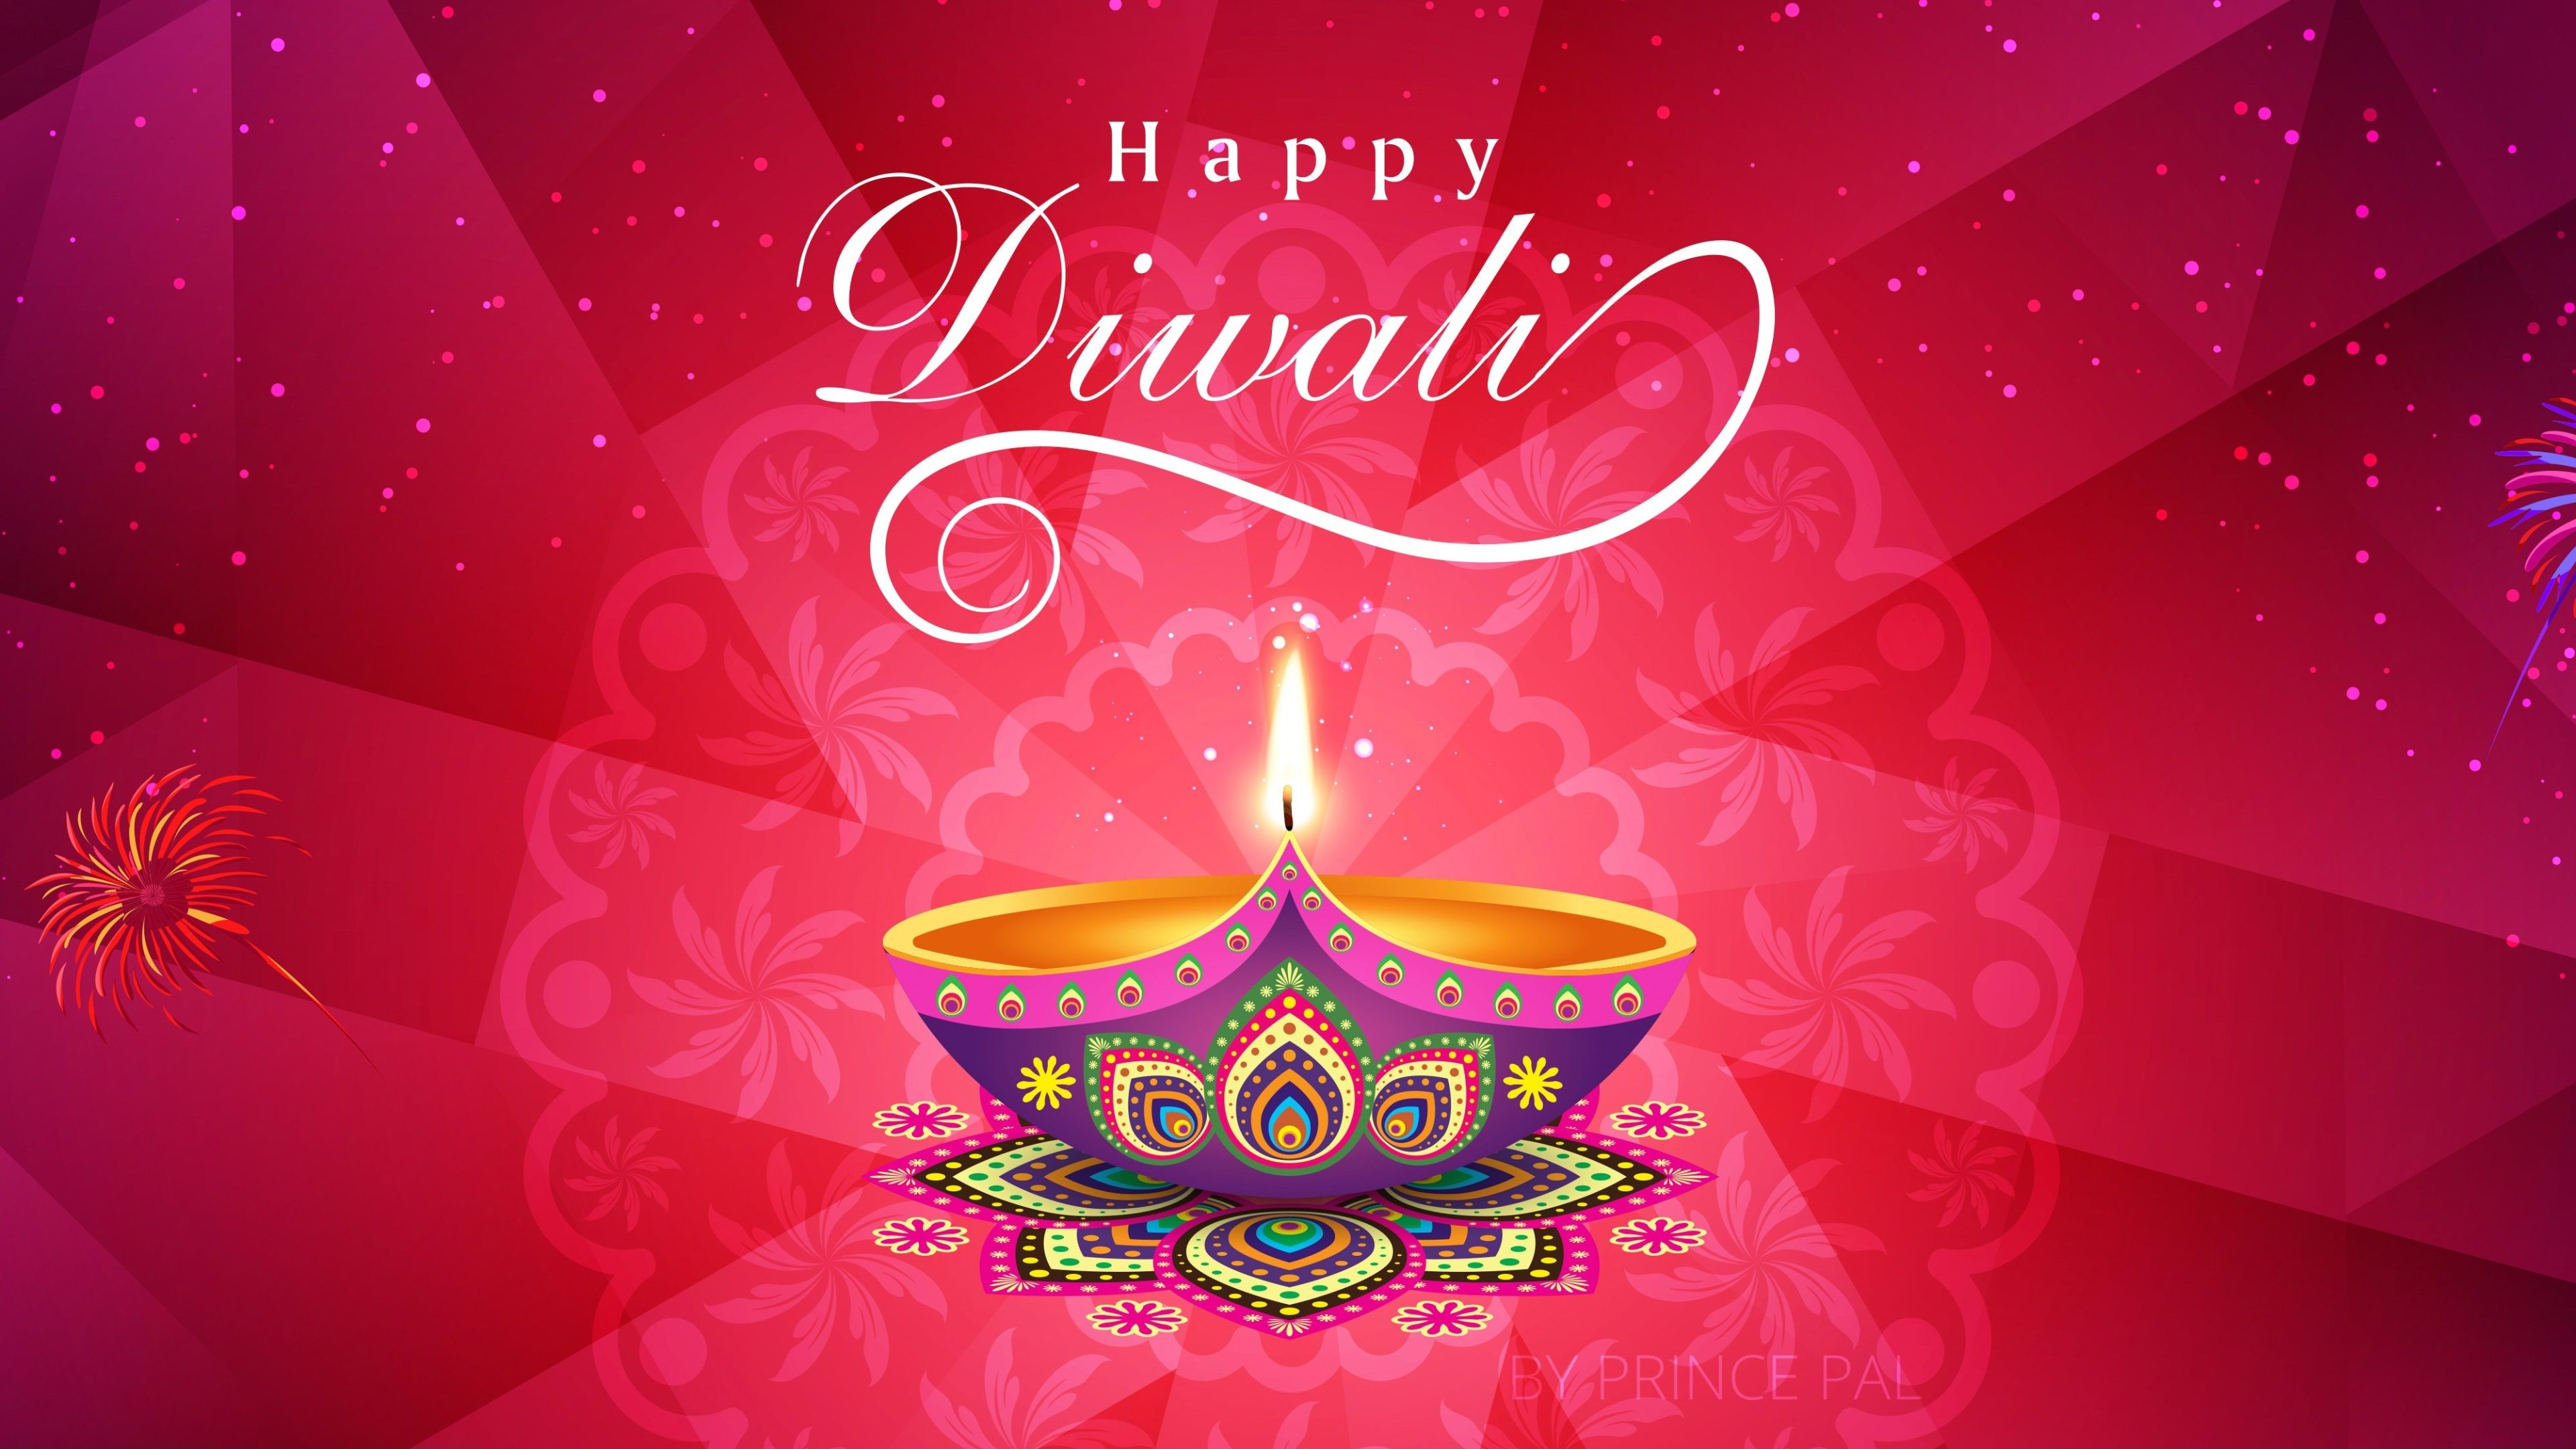 3840x2160 happy diwali 4k windows wallpaper download